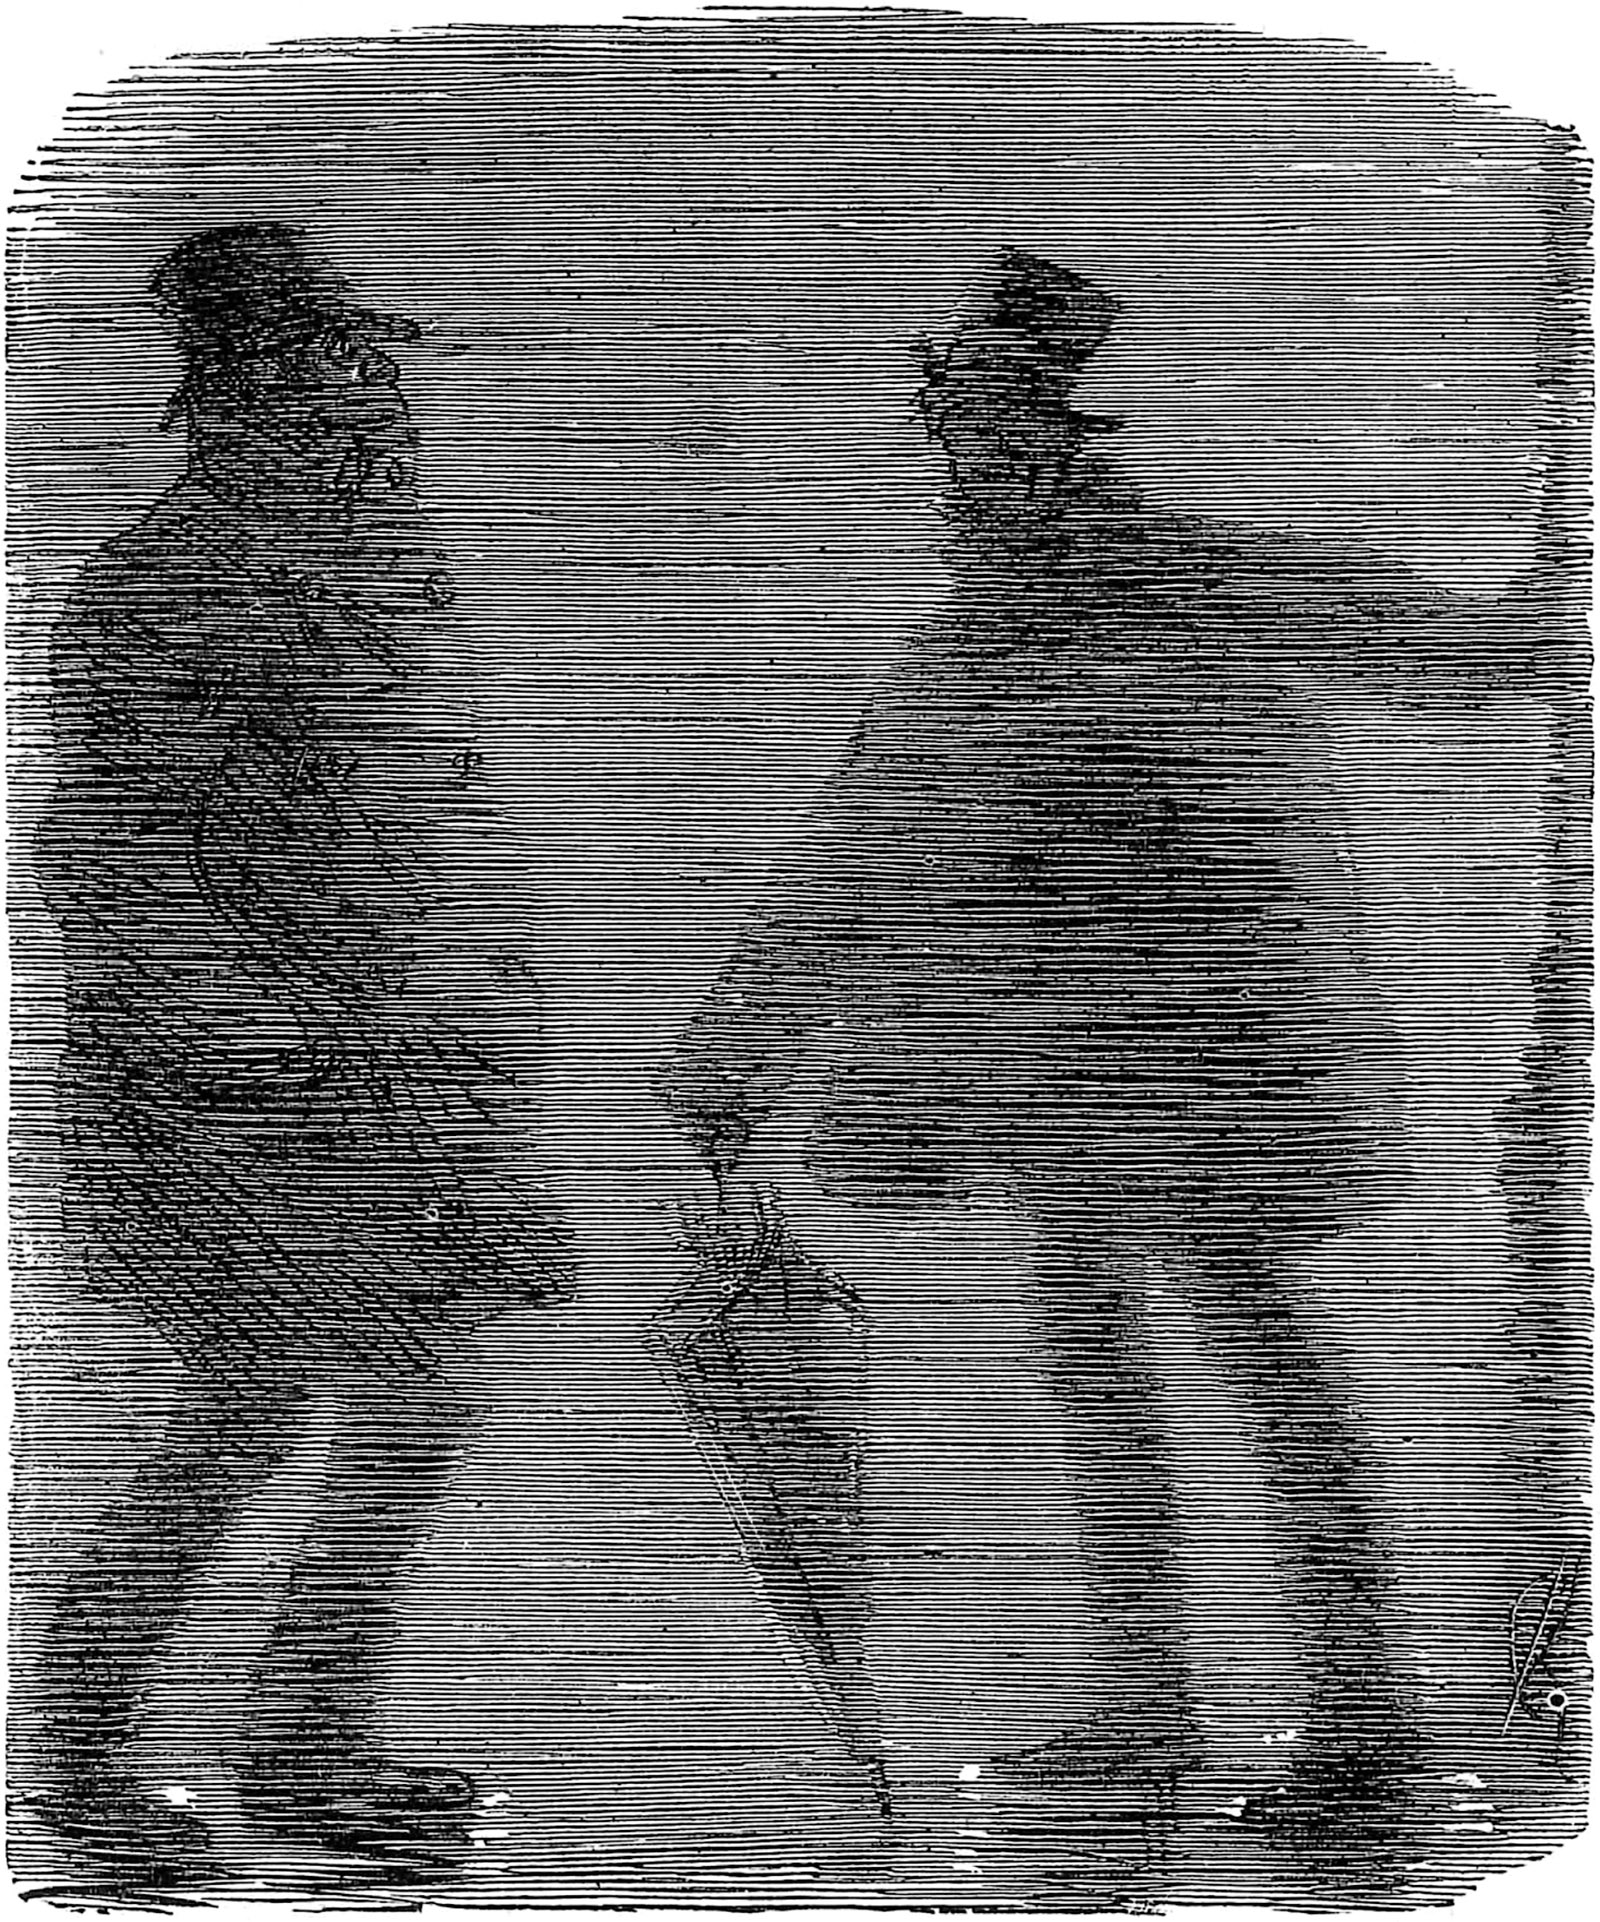 "'Be-Fogged'; cartoon by Charles Keene from Punch, 1880. The caption says: 'Polite Old Gentleman (in the Fog). ""Pray, Sir, can you kindly tell me if I'm going right for London Bridge?"" Shadowy Stranger. ""Lum Bri'gsh? Goo' Joke! 'Nother Man 'shame Shtate's myshelf! I wan' t' fin' Lum Bri'gsh, too! Ta' my Arm—"" [Old Gent hurries off!]'"